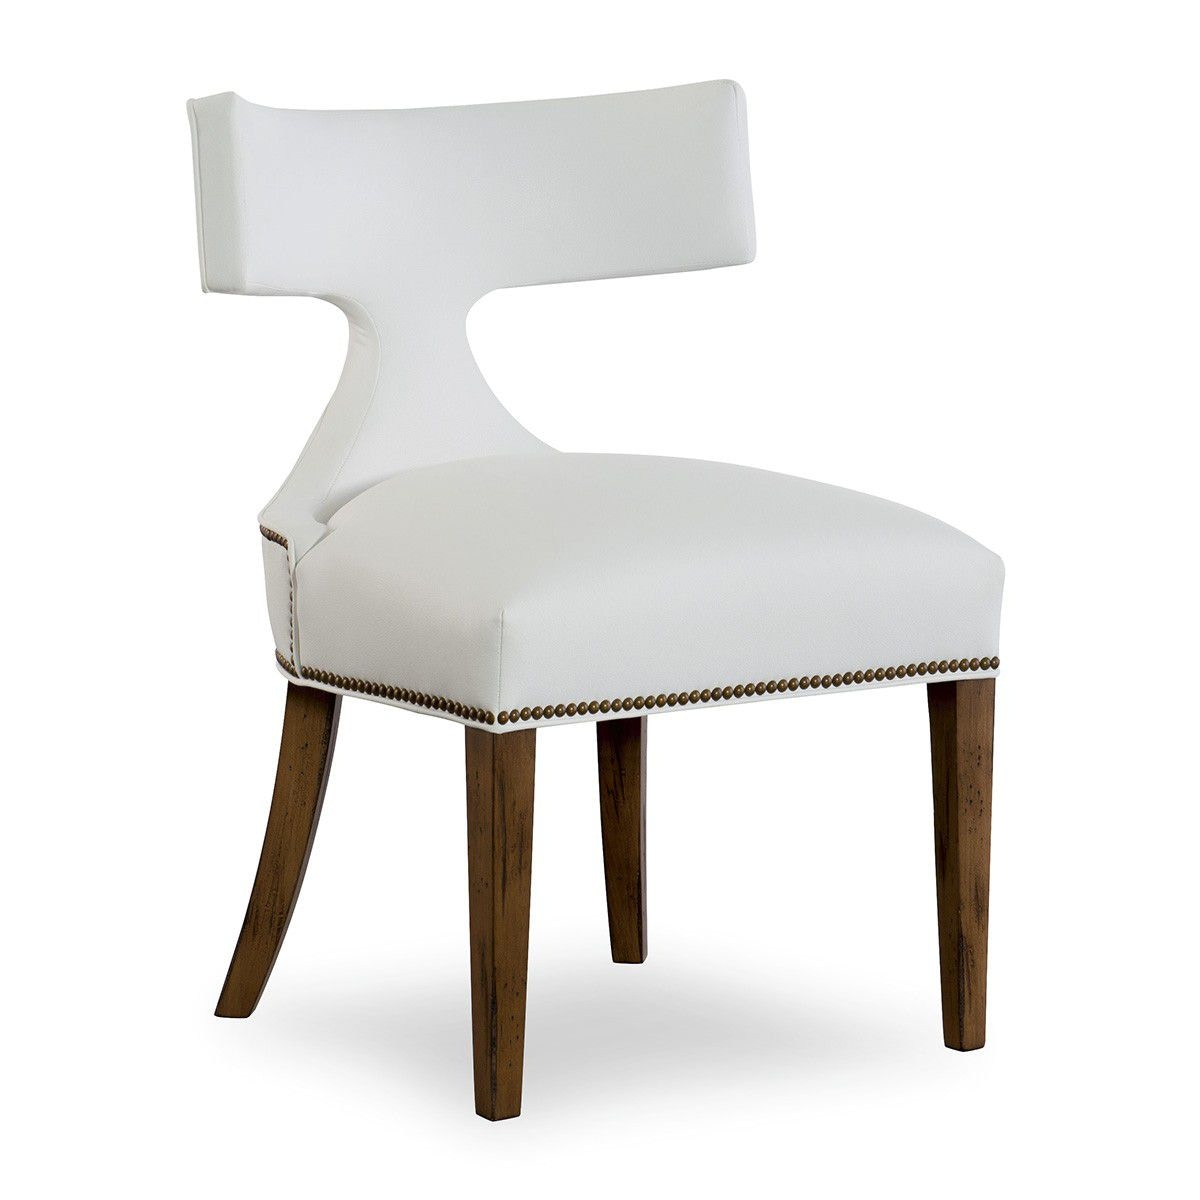 CR Laine Dining Room Dining Side Chair